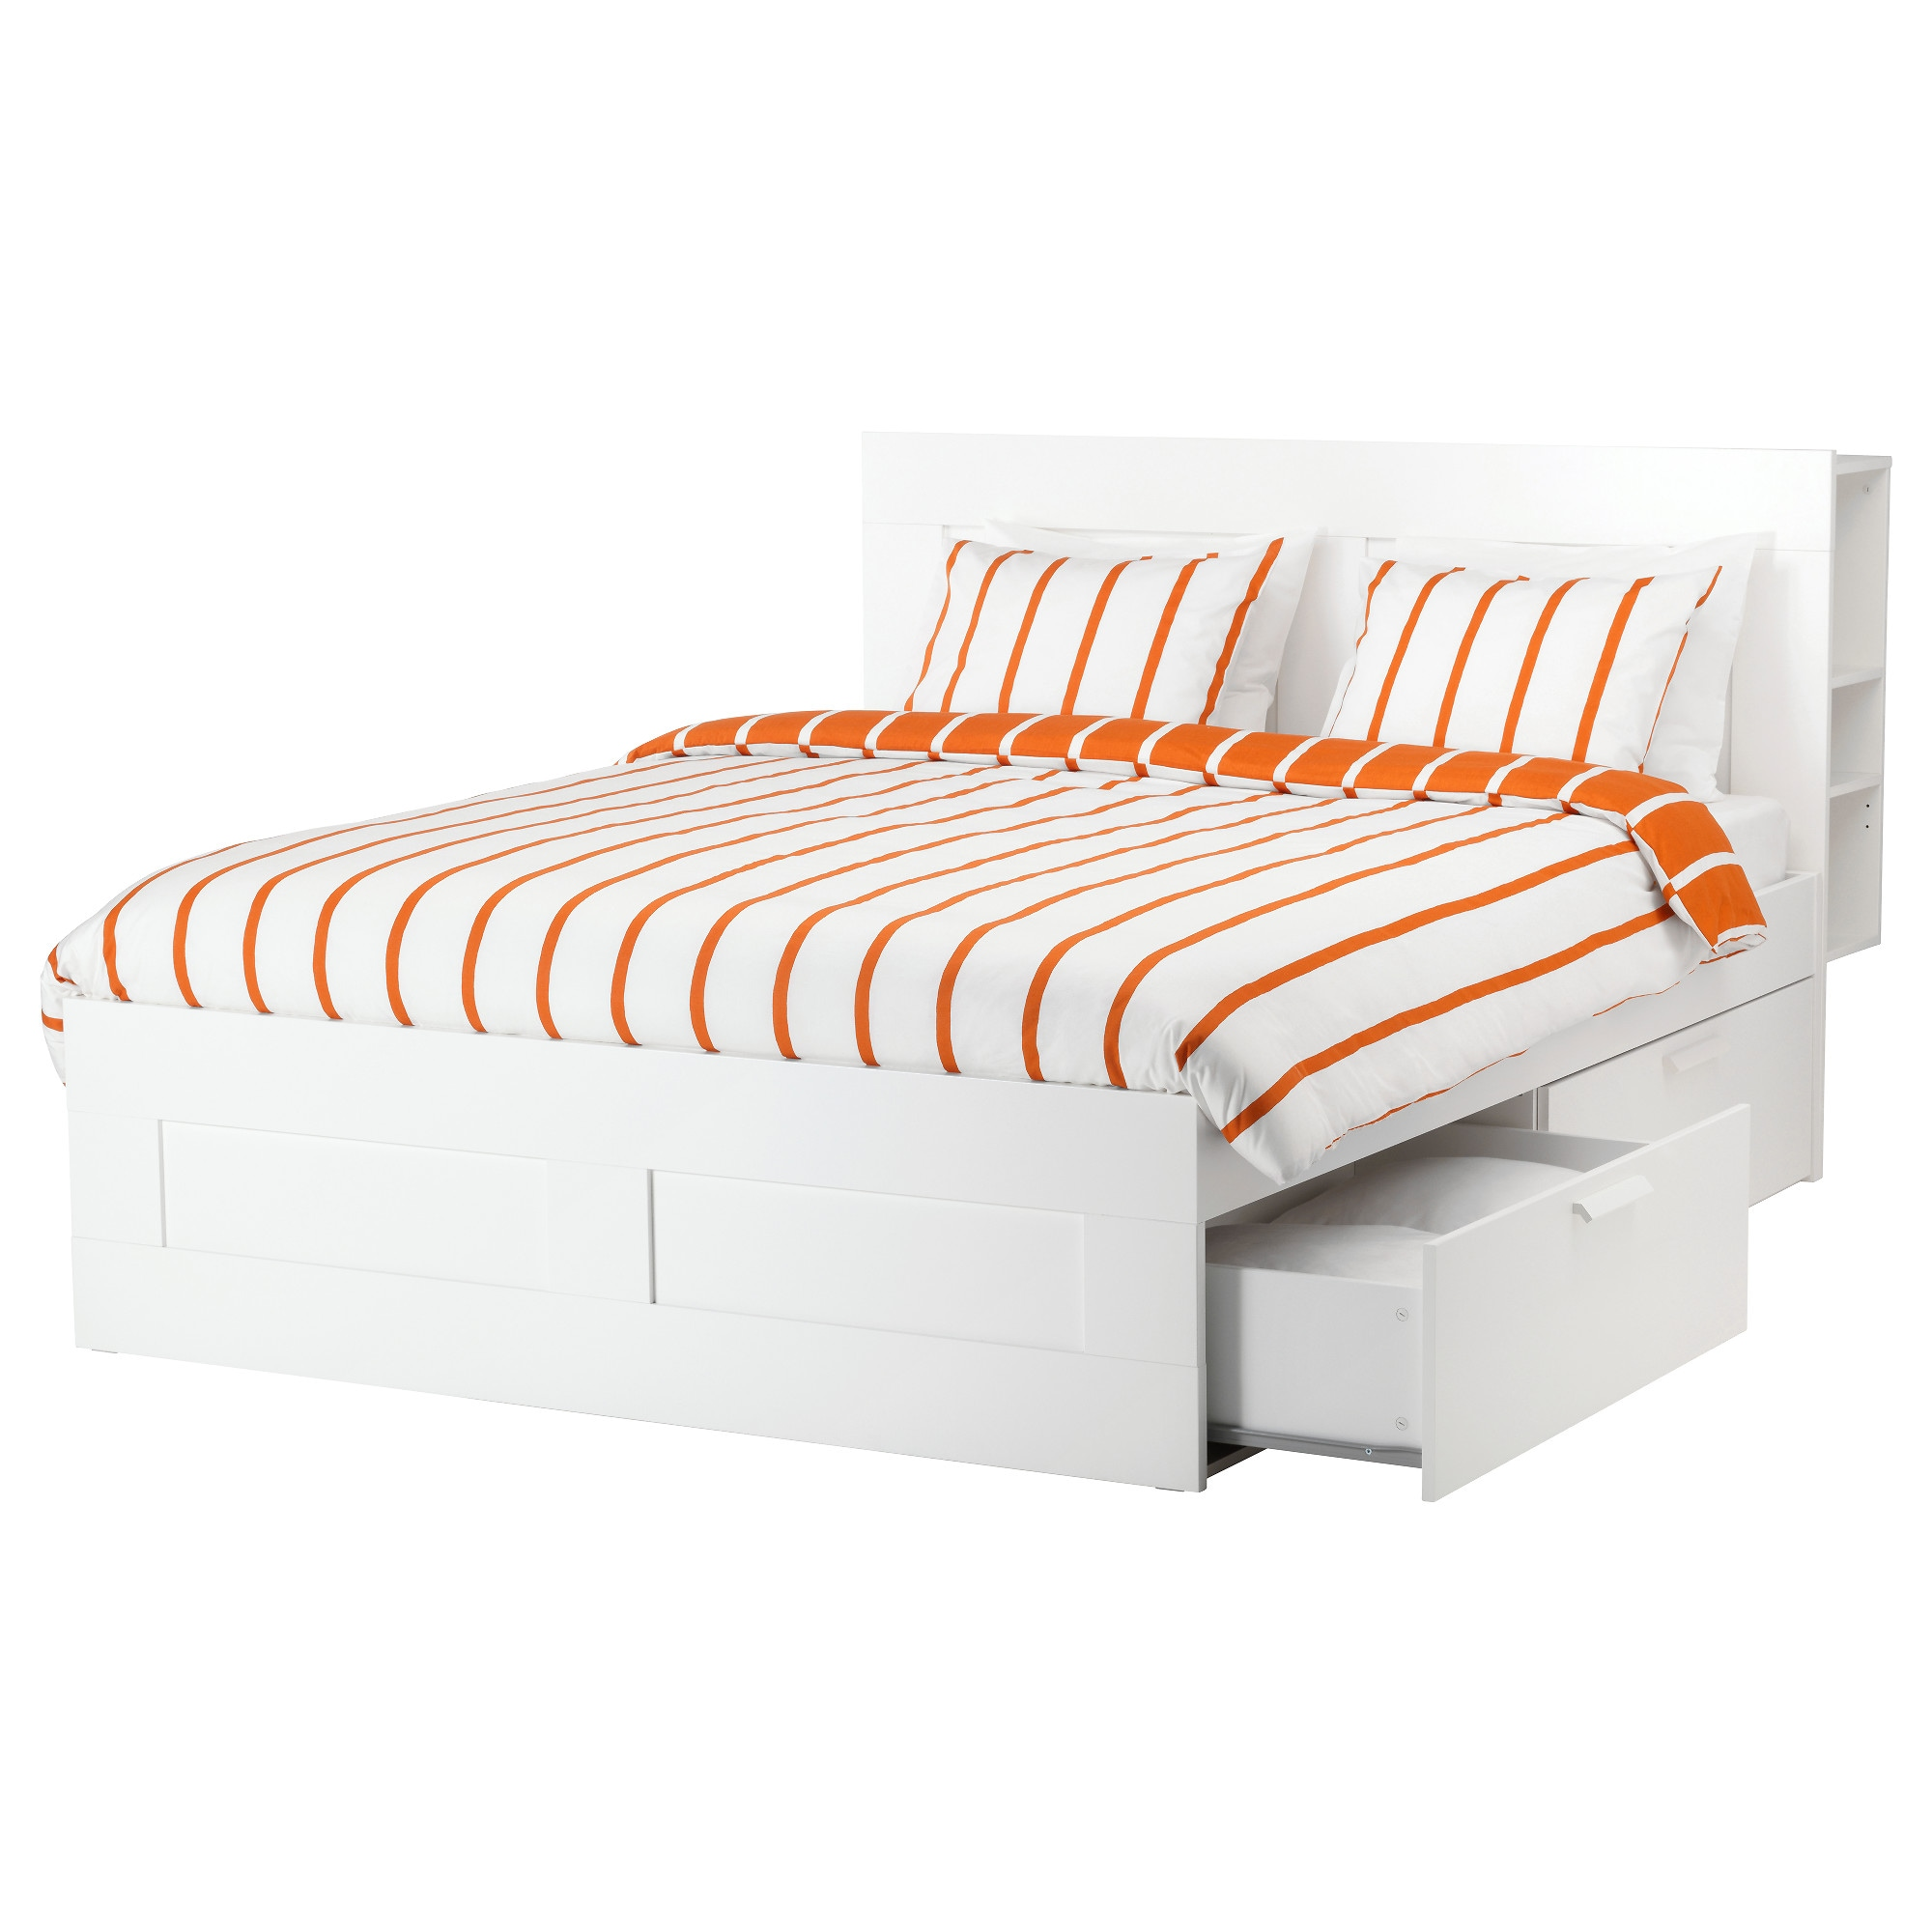 brimnes bed frame with storage headboard white lury length 95 1